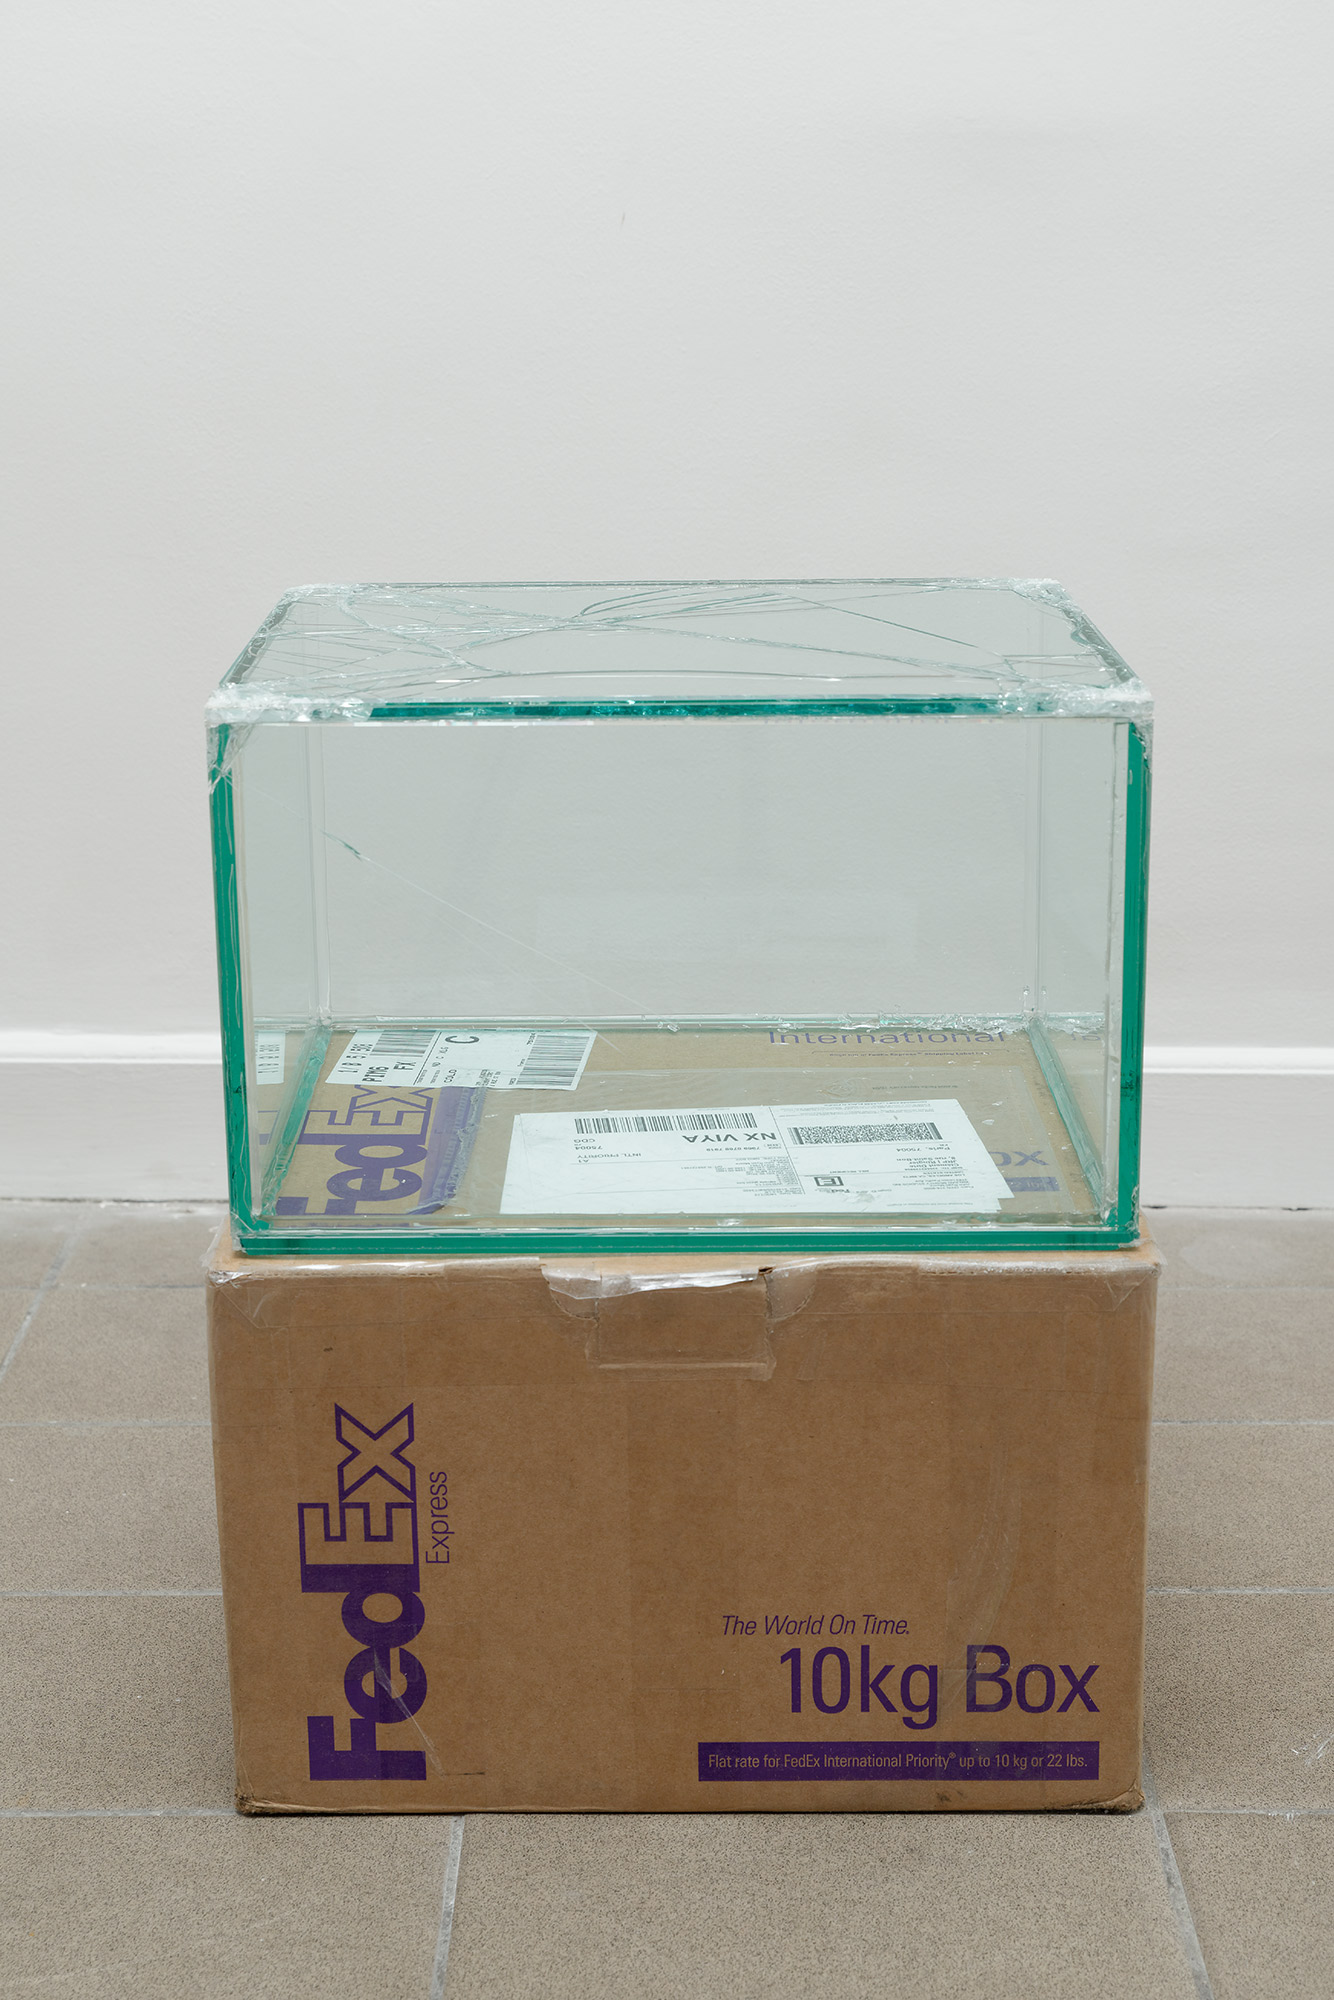 FedEx® 10kg Box  © 2006 FedEx 149801 REV 9/06 MP, International Priority, Los Angeles-Paris trk#796906988159, October 14-16, 2013   2013–  Laminated glass, FedEx shipping box, accrued FedEx shipping and tracking labels, silicone, metal, tape  10 1/2 x 16 1/4 x 13 1/4 inches   FedEx Glass Works, 2007–    8 rue Saint-Bon, 2013